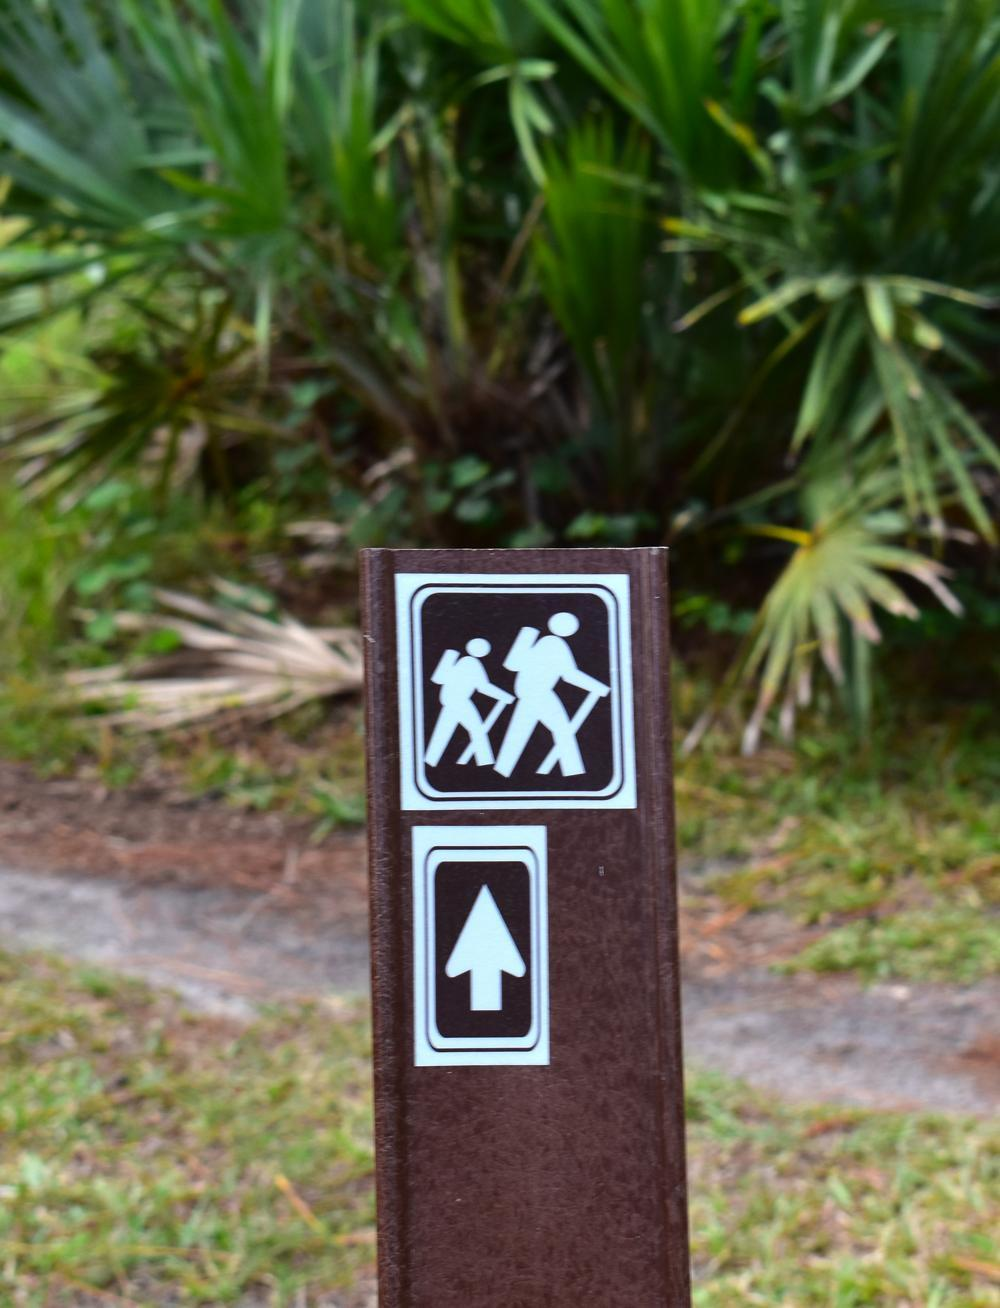 An image of hiking trail signage